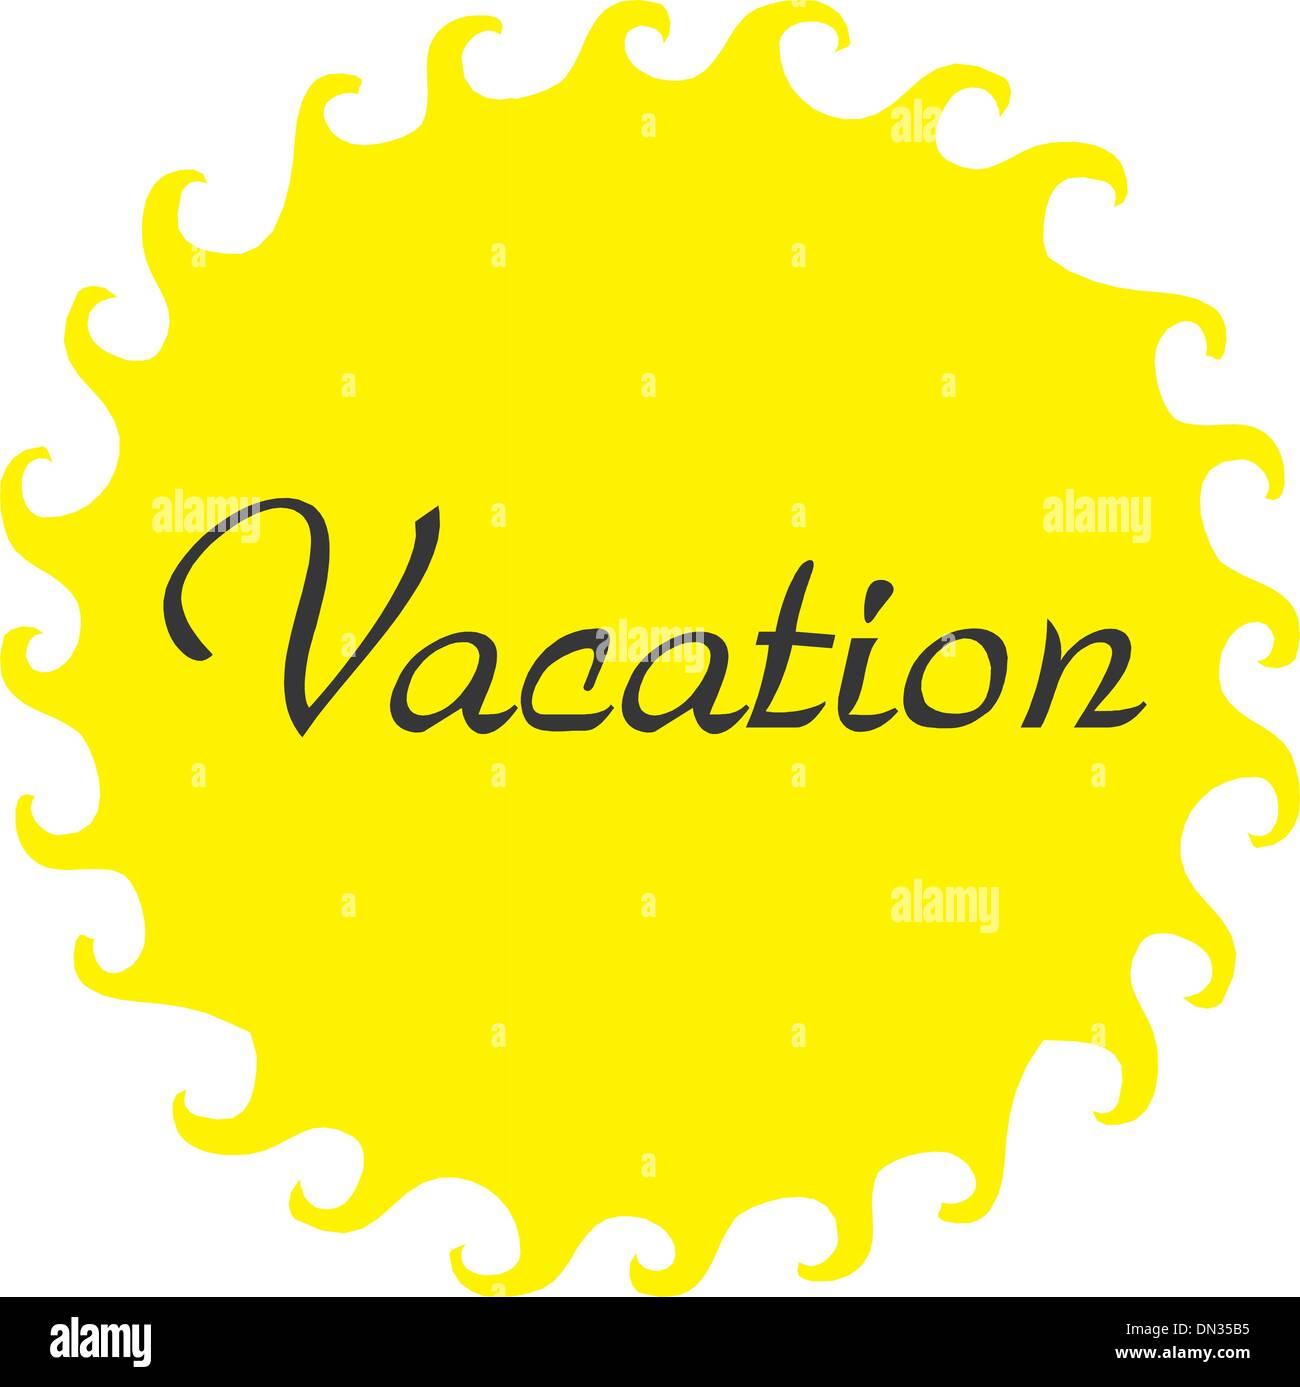 Vacation - Stock Vector